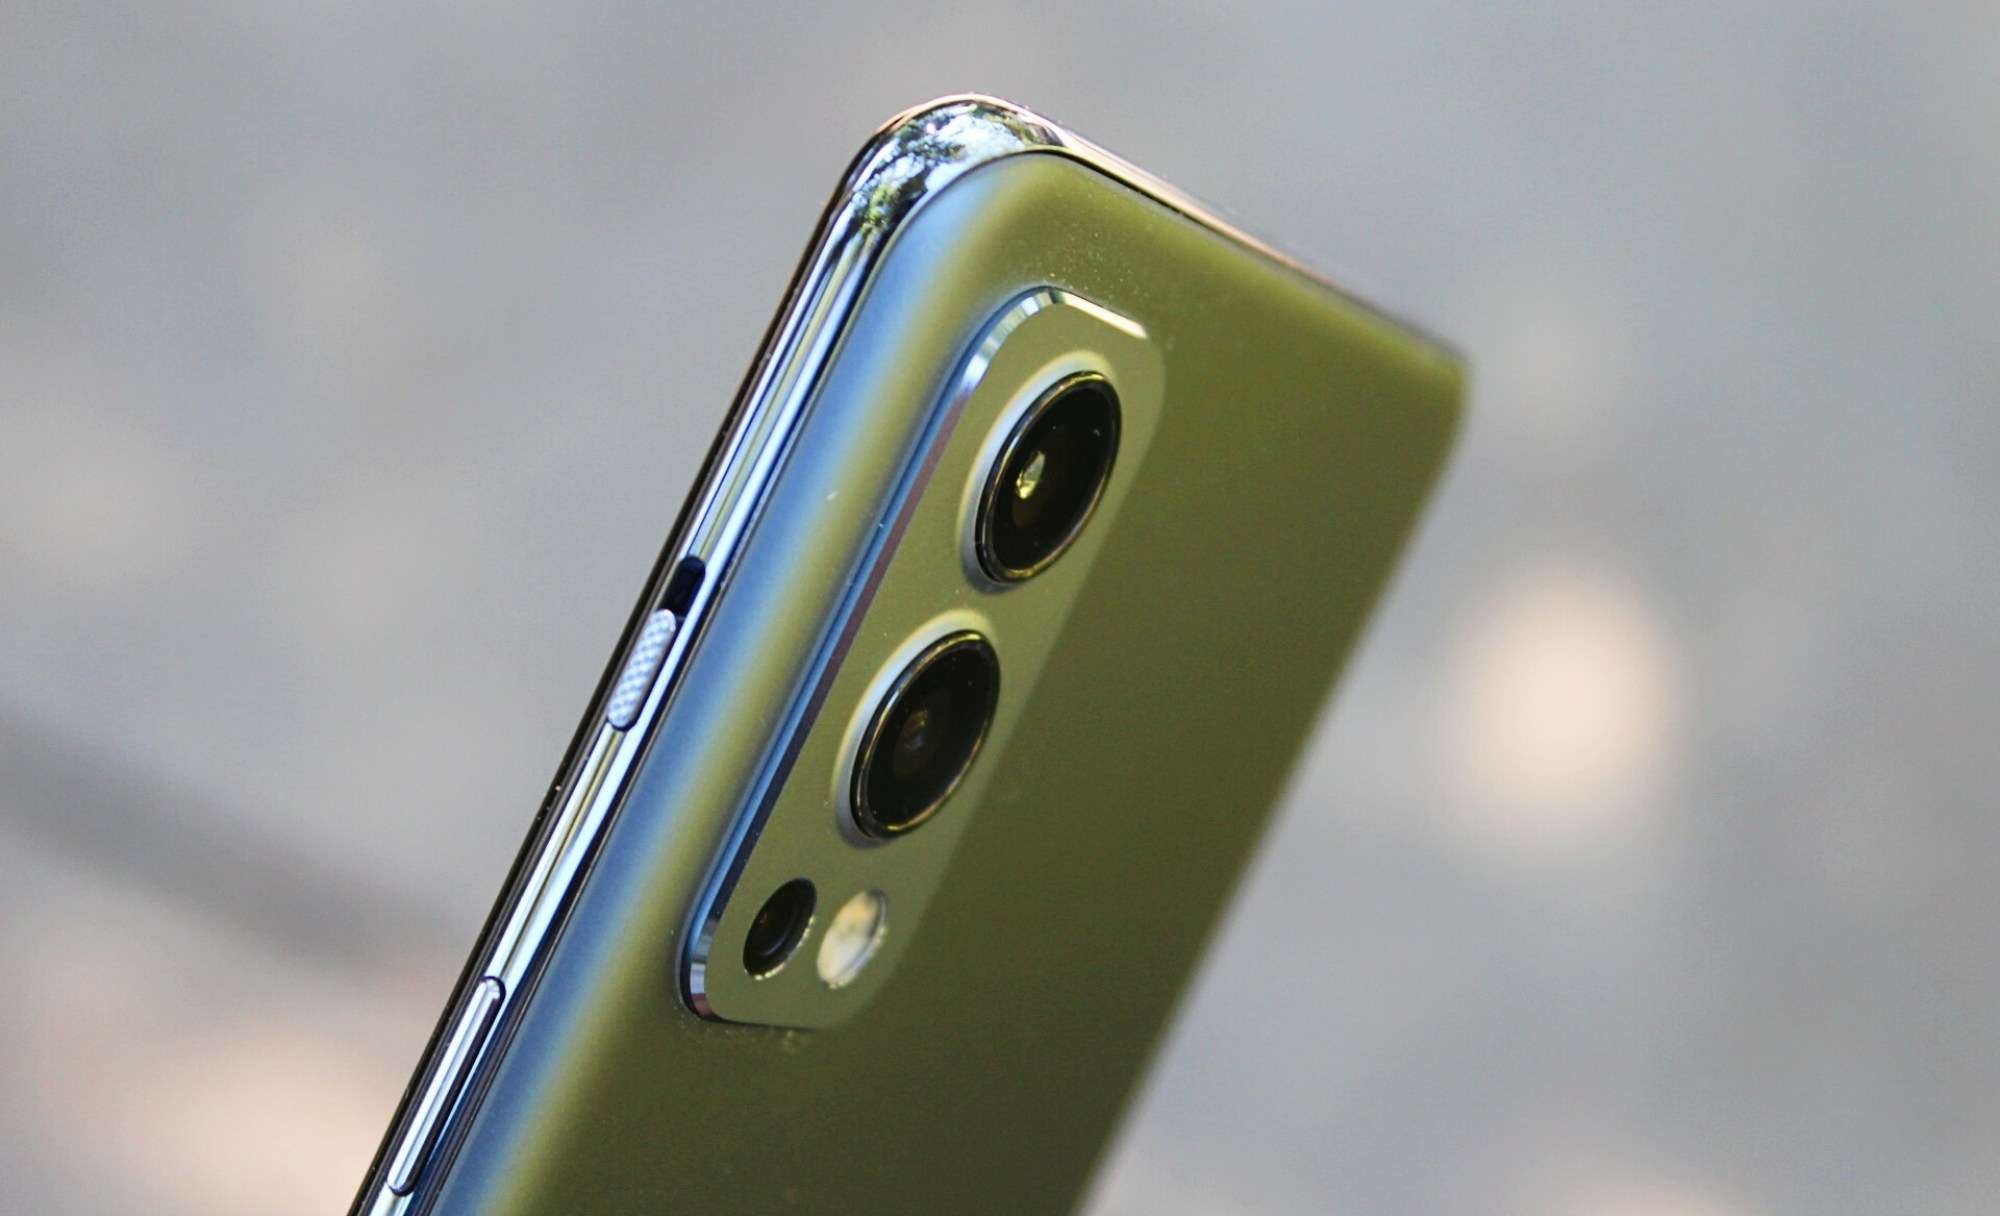 On the back, there's a triple rear camera with a 50-megapixel main sensor.